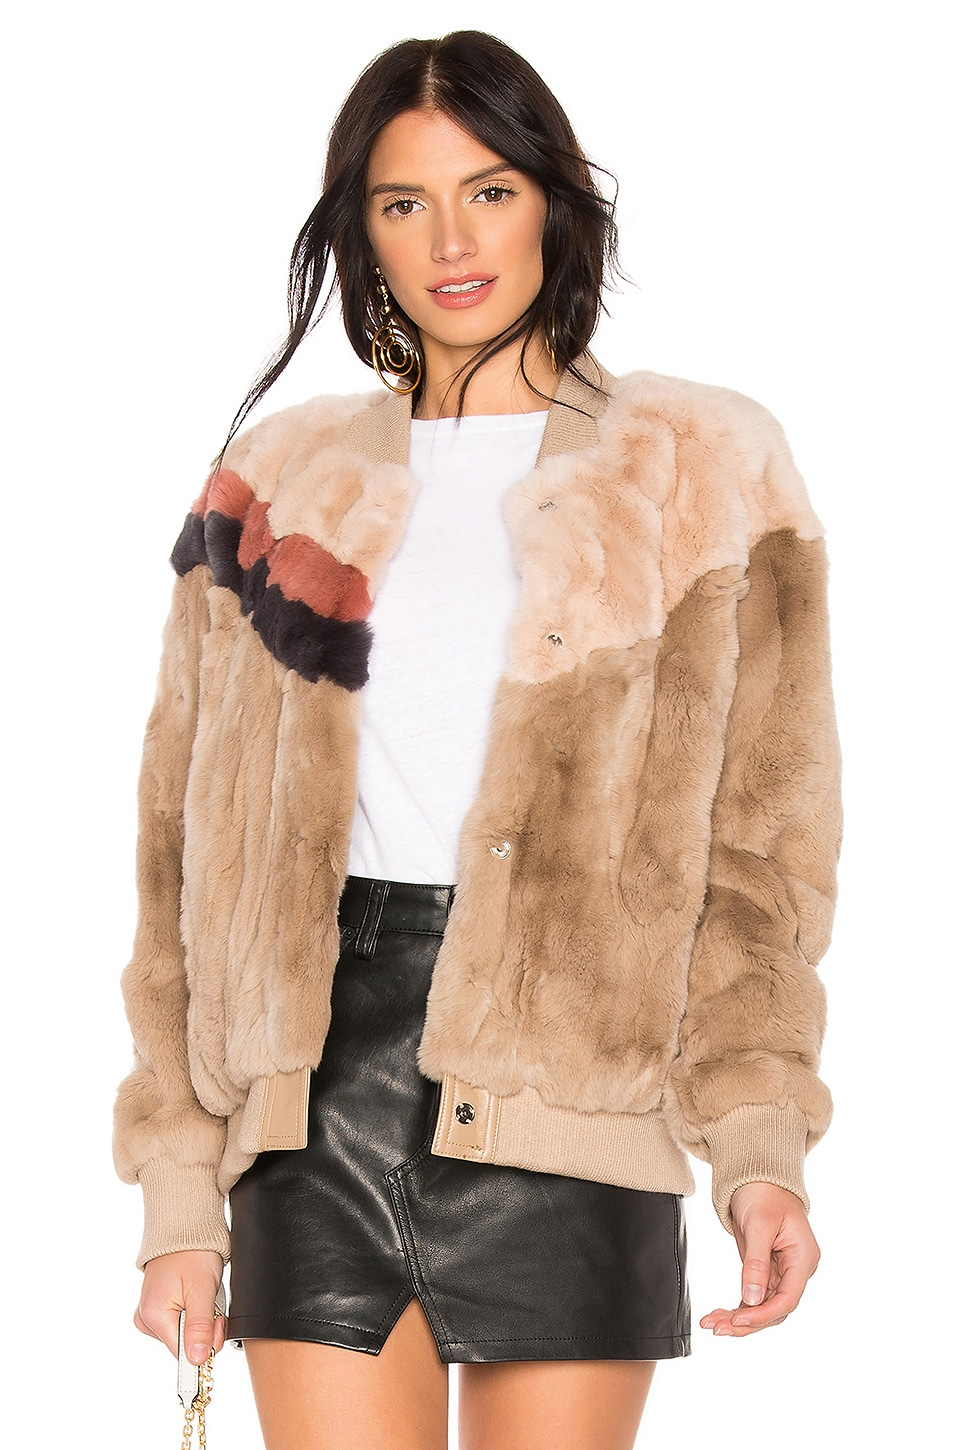 HEARTLOOM Meg Rabbit Fur Jacket in Latte